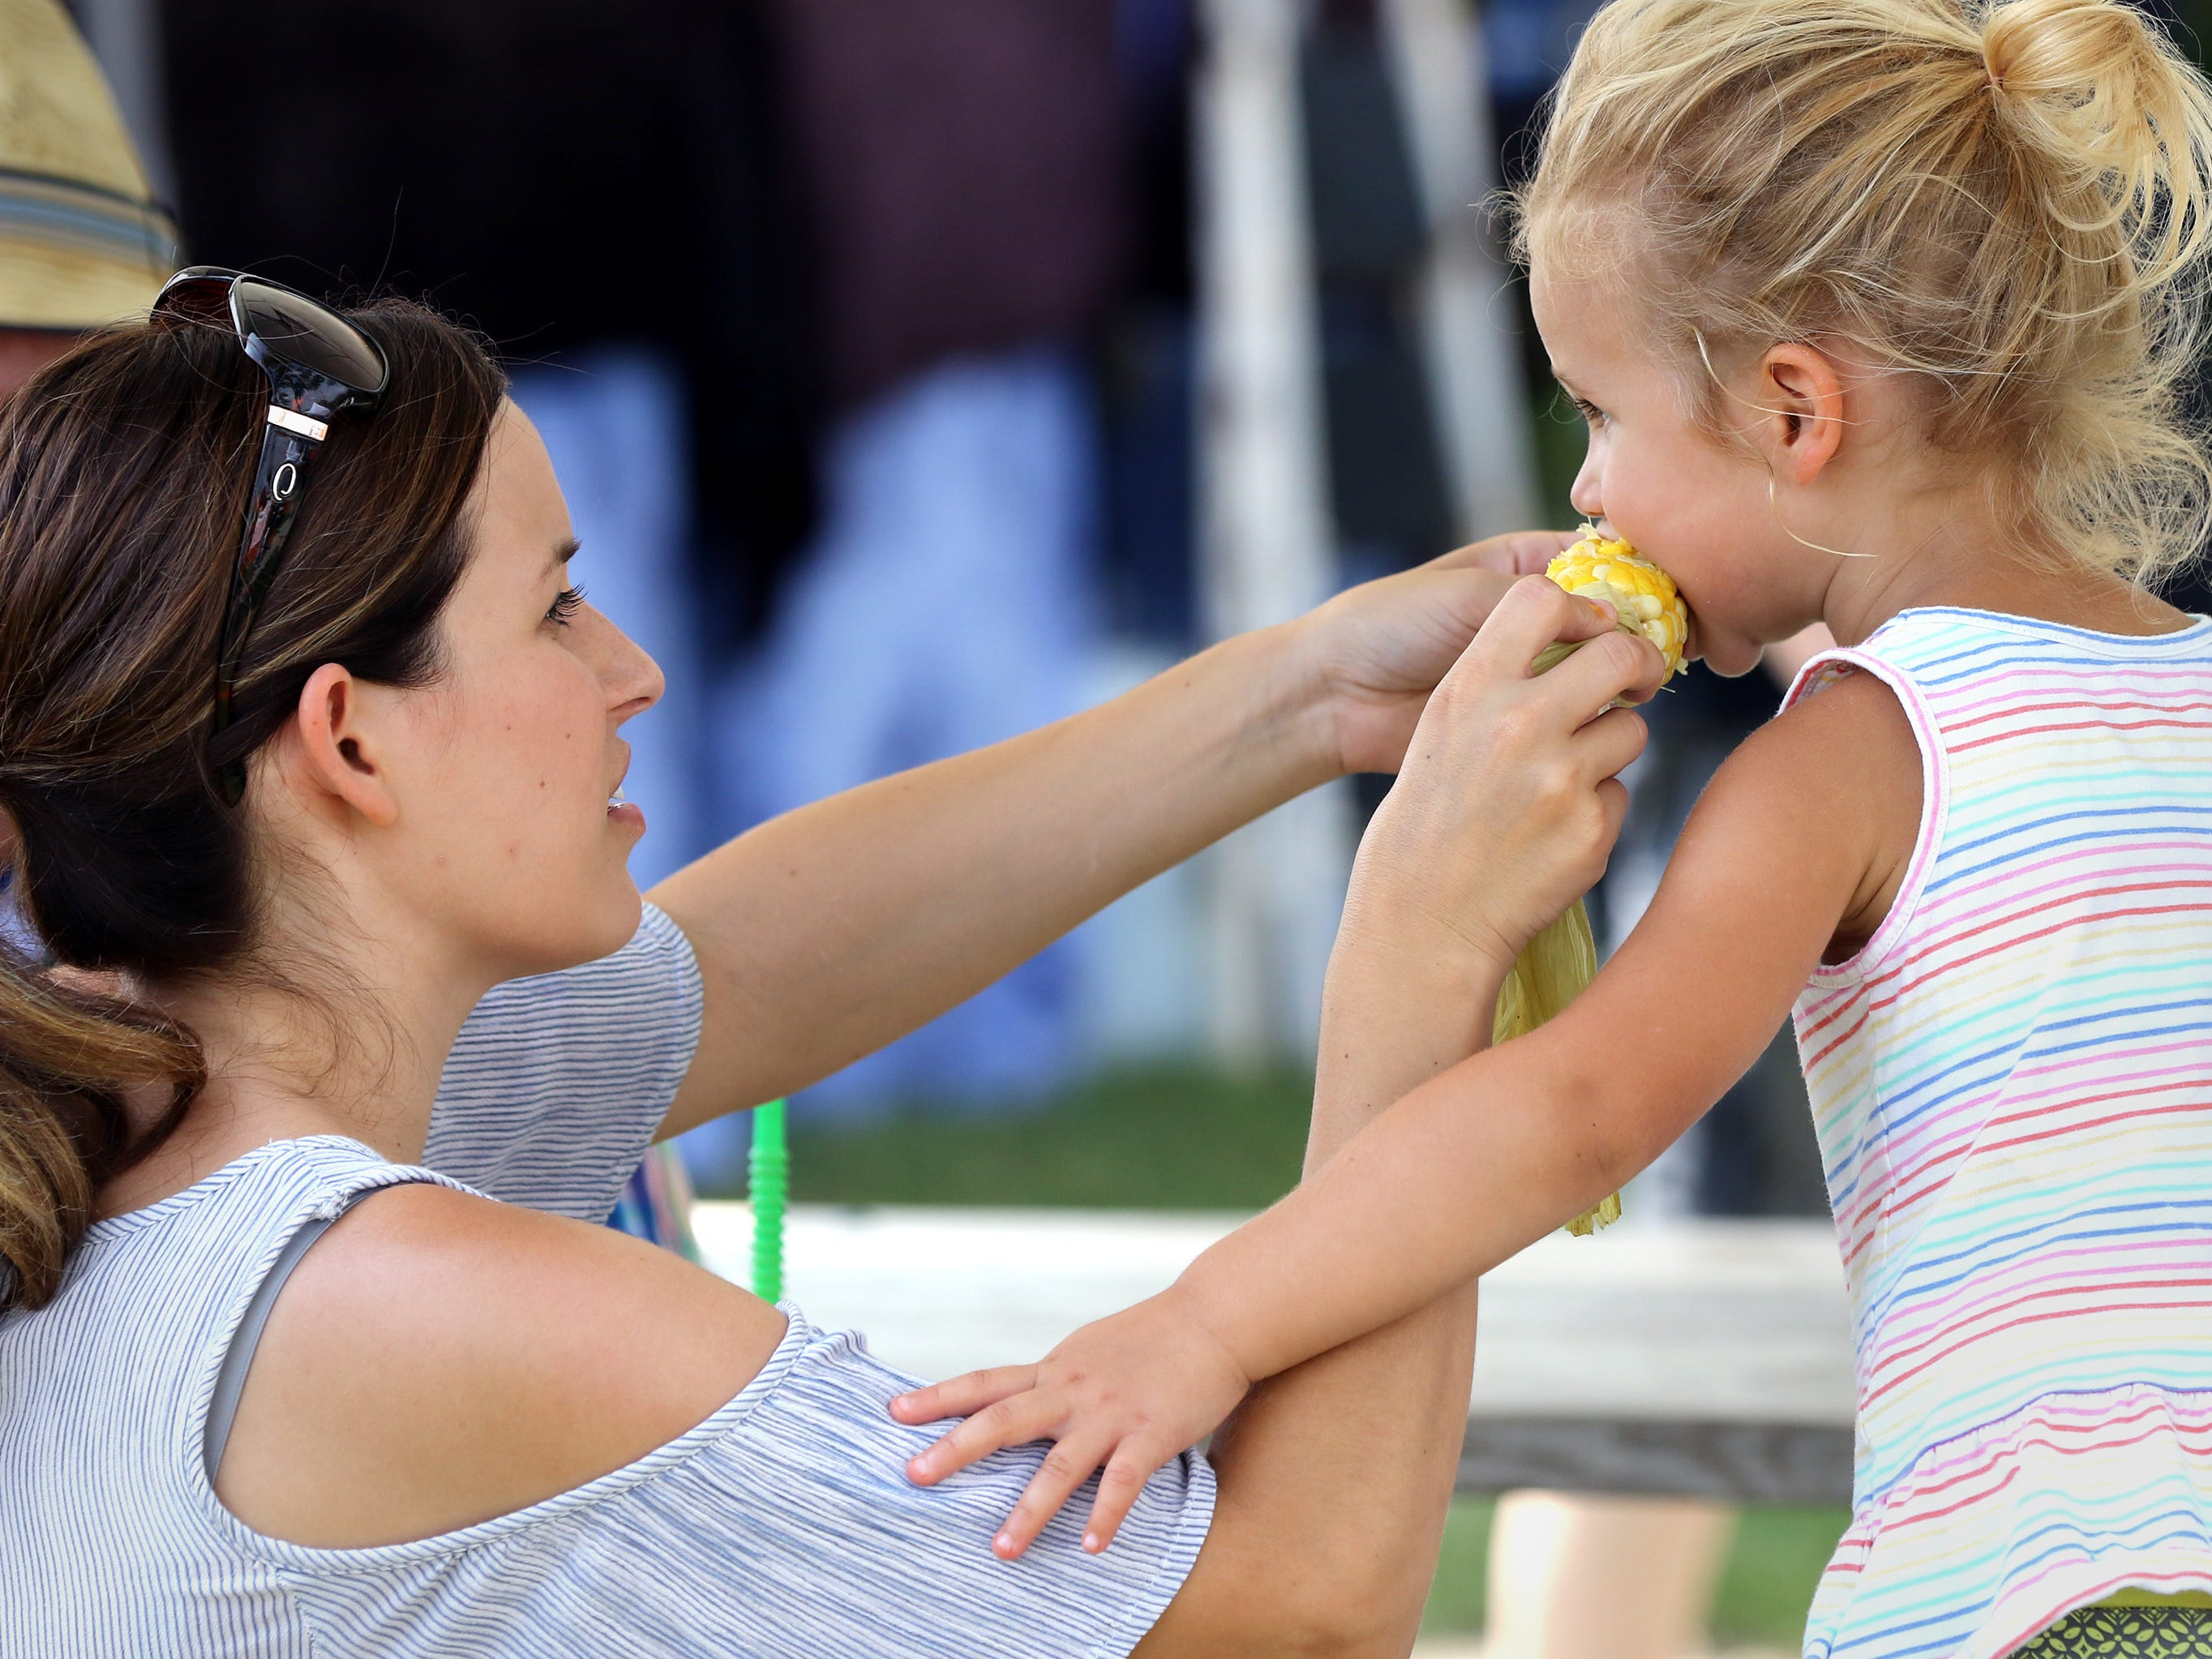 Katie (left) and Emma Ferch of Cedarburg share an ear of roasted corn during the Muskego Community Festival at Muskego Veterans Memorial Park on Aug. 25.